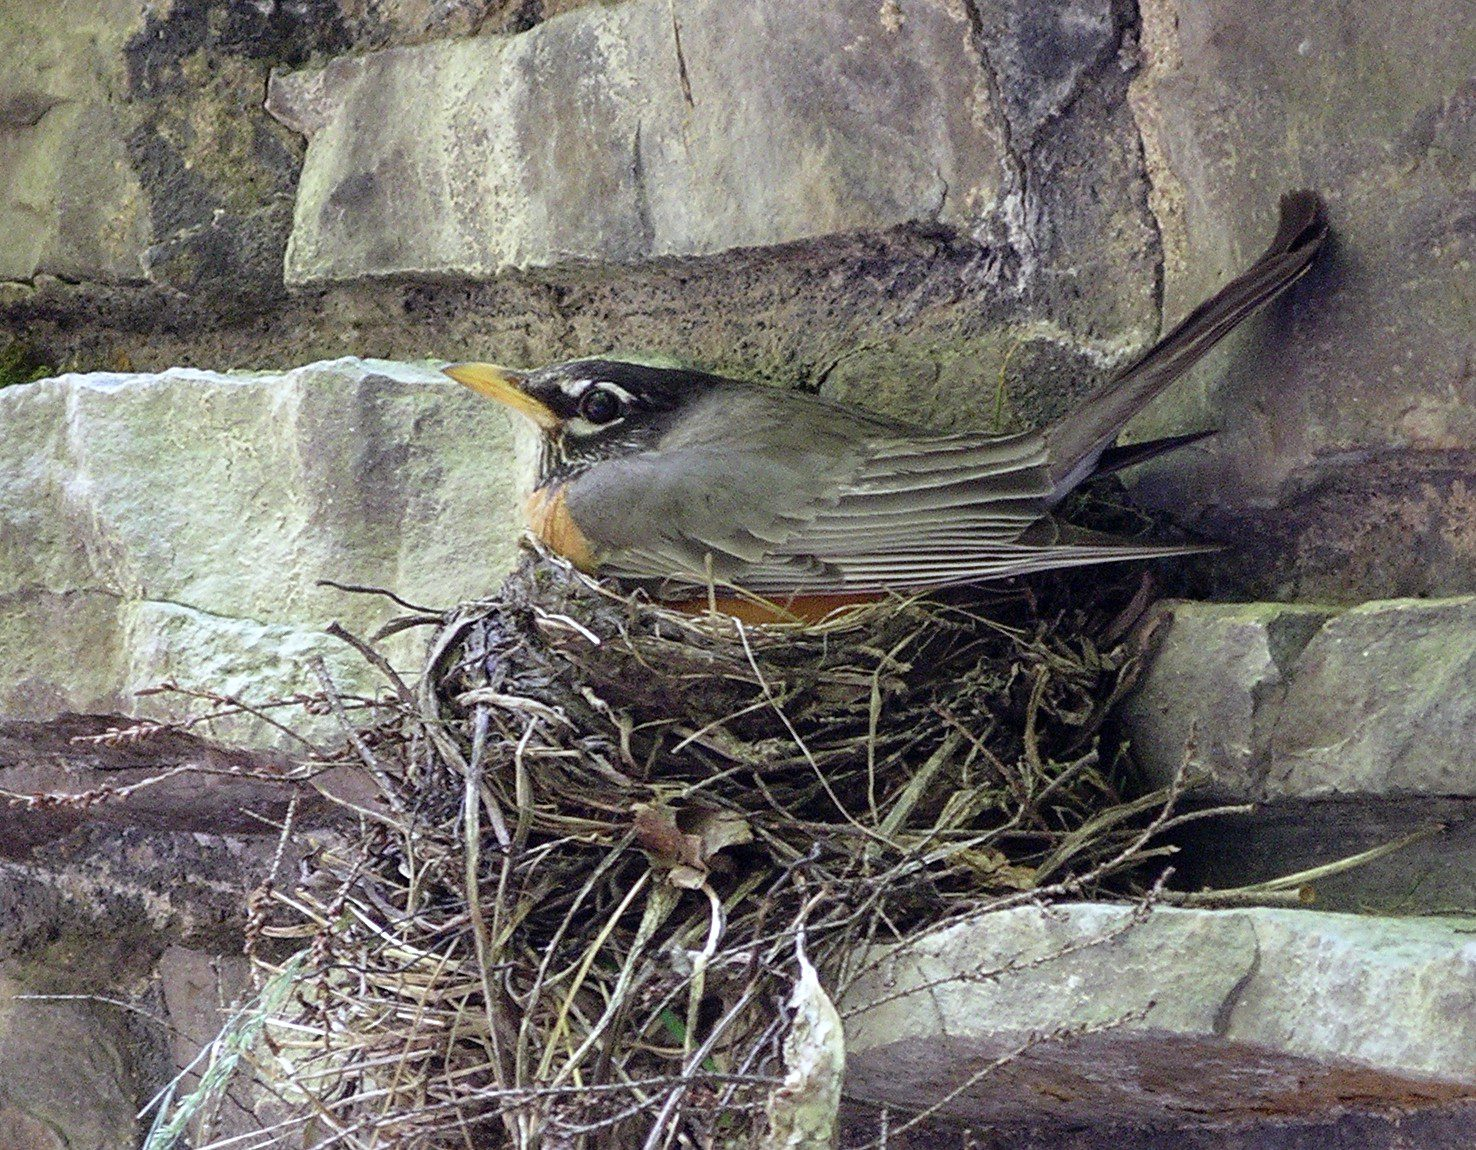 American Robin start nesting activities in April.  The ones on my shutter are starting to incubate their eggs.  Photo by Joe Sebastiani